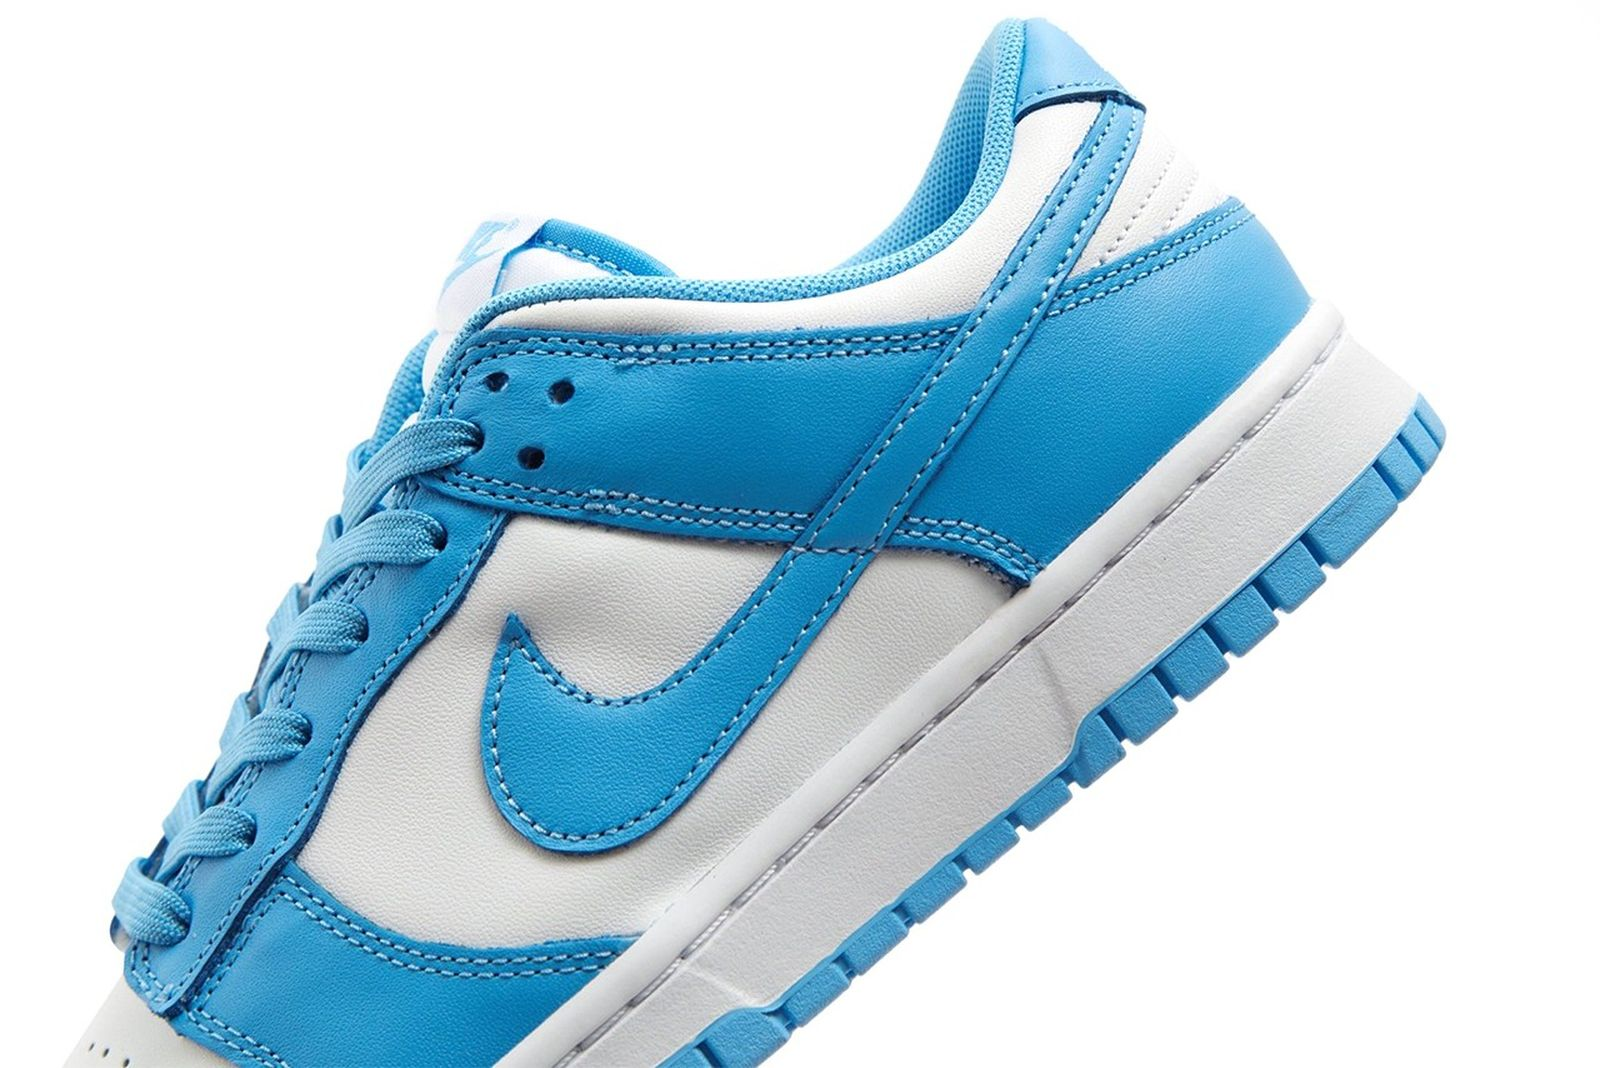 nike-dunk-low-university-blue-release-date-price-4